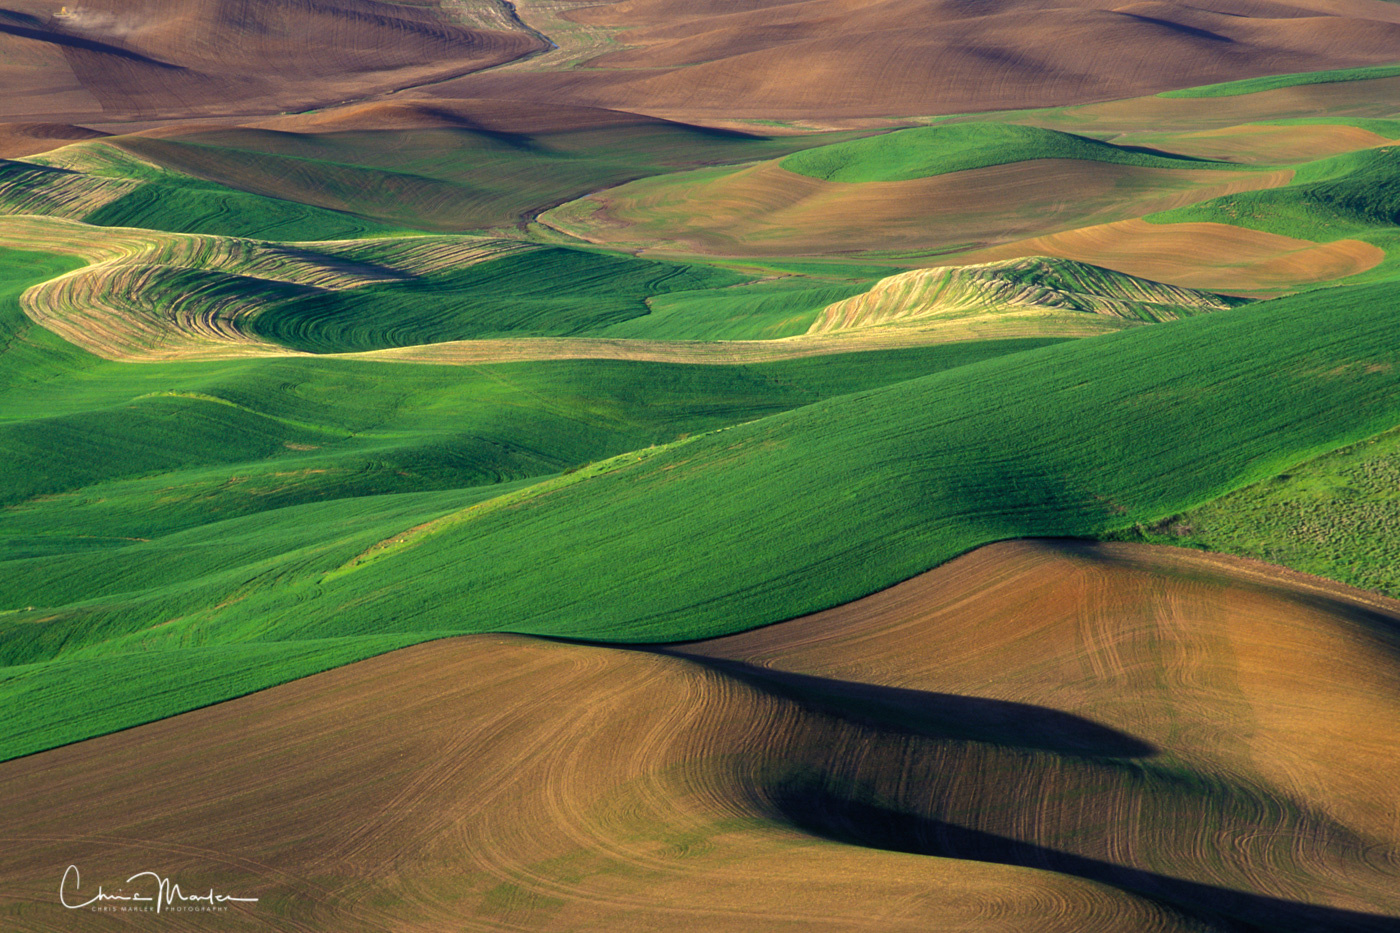 The Palouse landscape contains an unlimited number of curves, lines, textures, and abstract scenes that can make great contemporary...